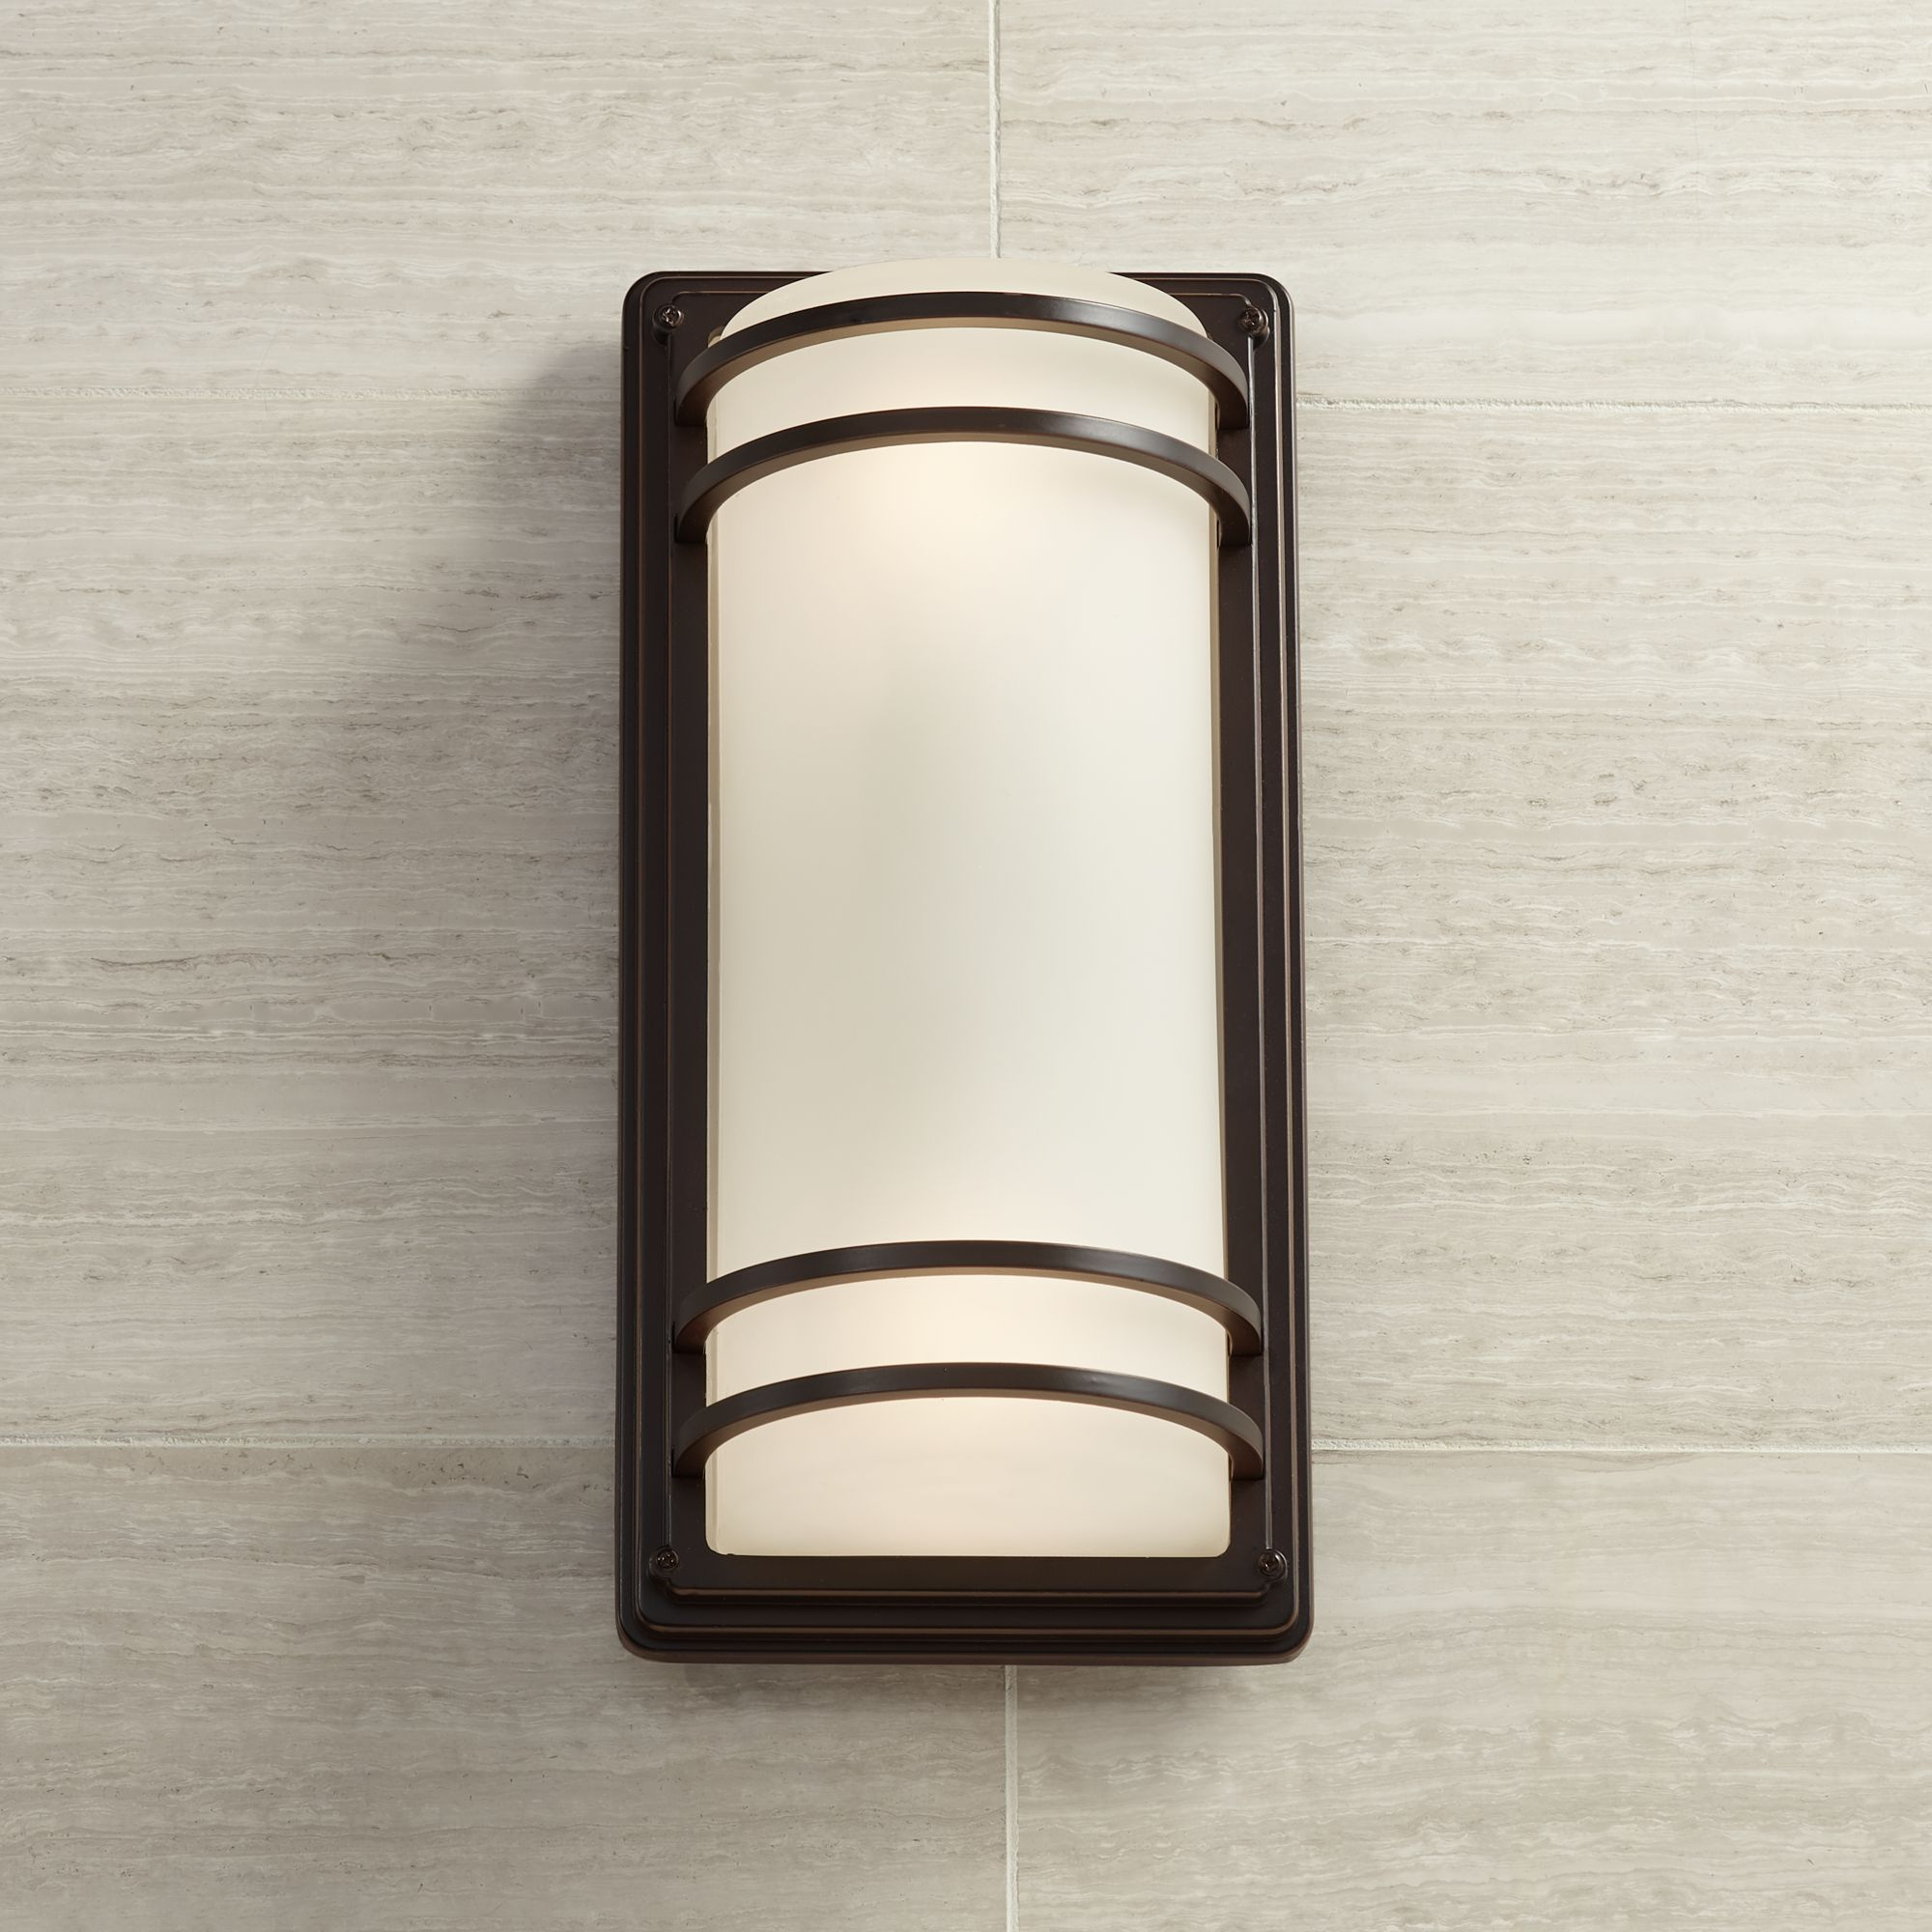 """John Timberland Modern Outdoor Wall Sconce Fixture Rubbed Bronze 16"""" Opal Etched Glass for Exterior House Porch Patio"""